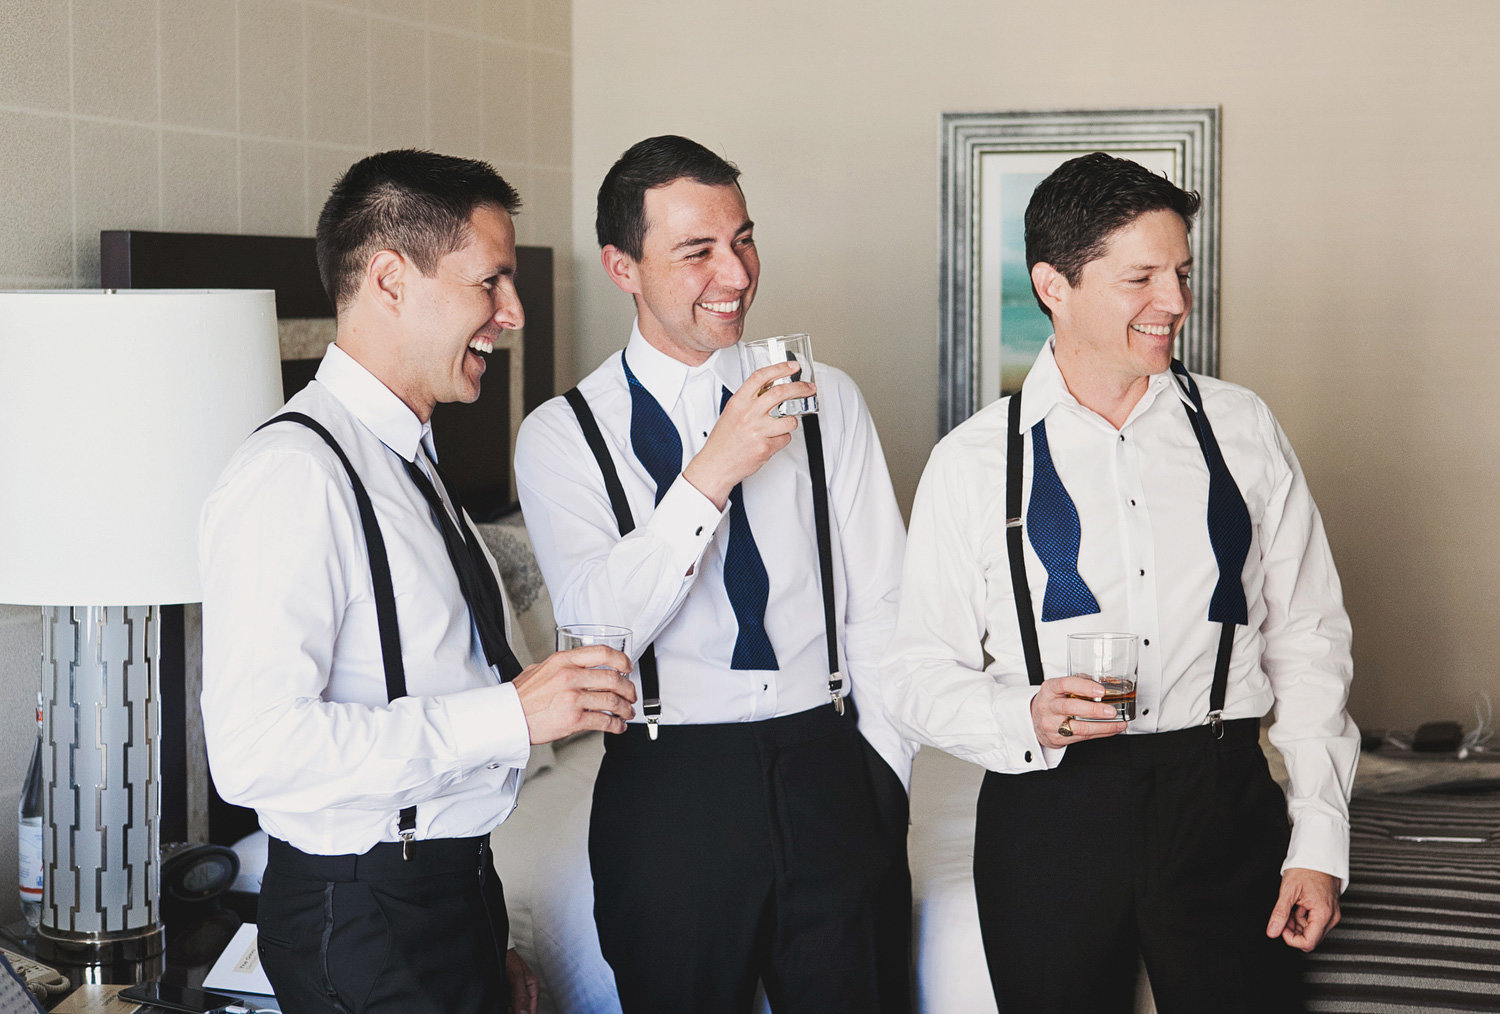 Groomsmen getting ready with black bow ties